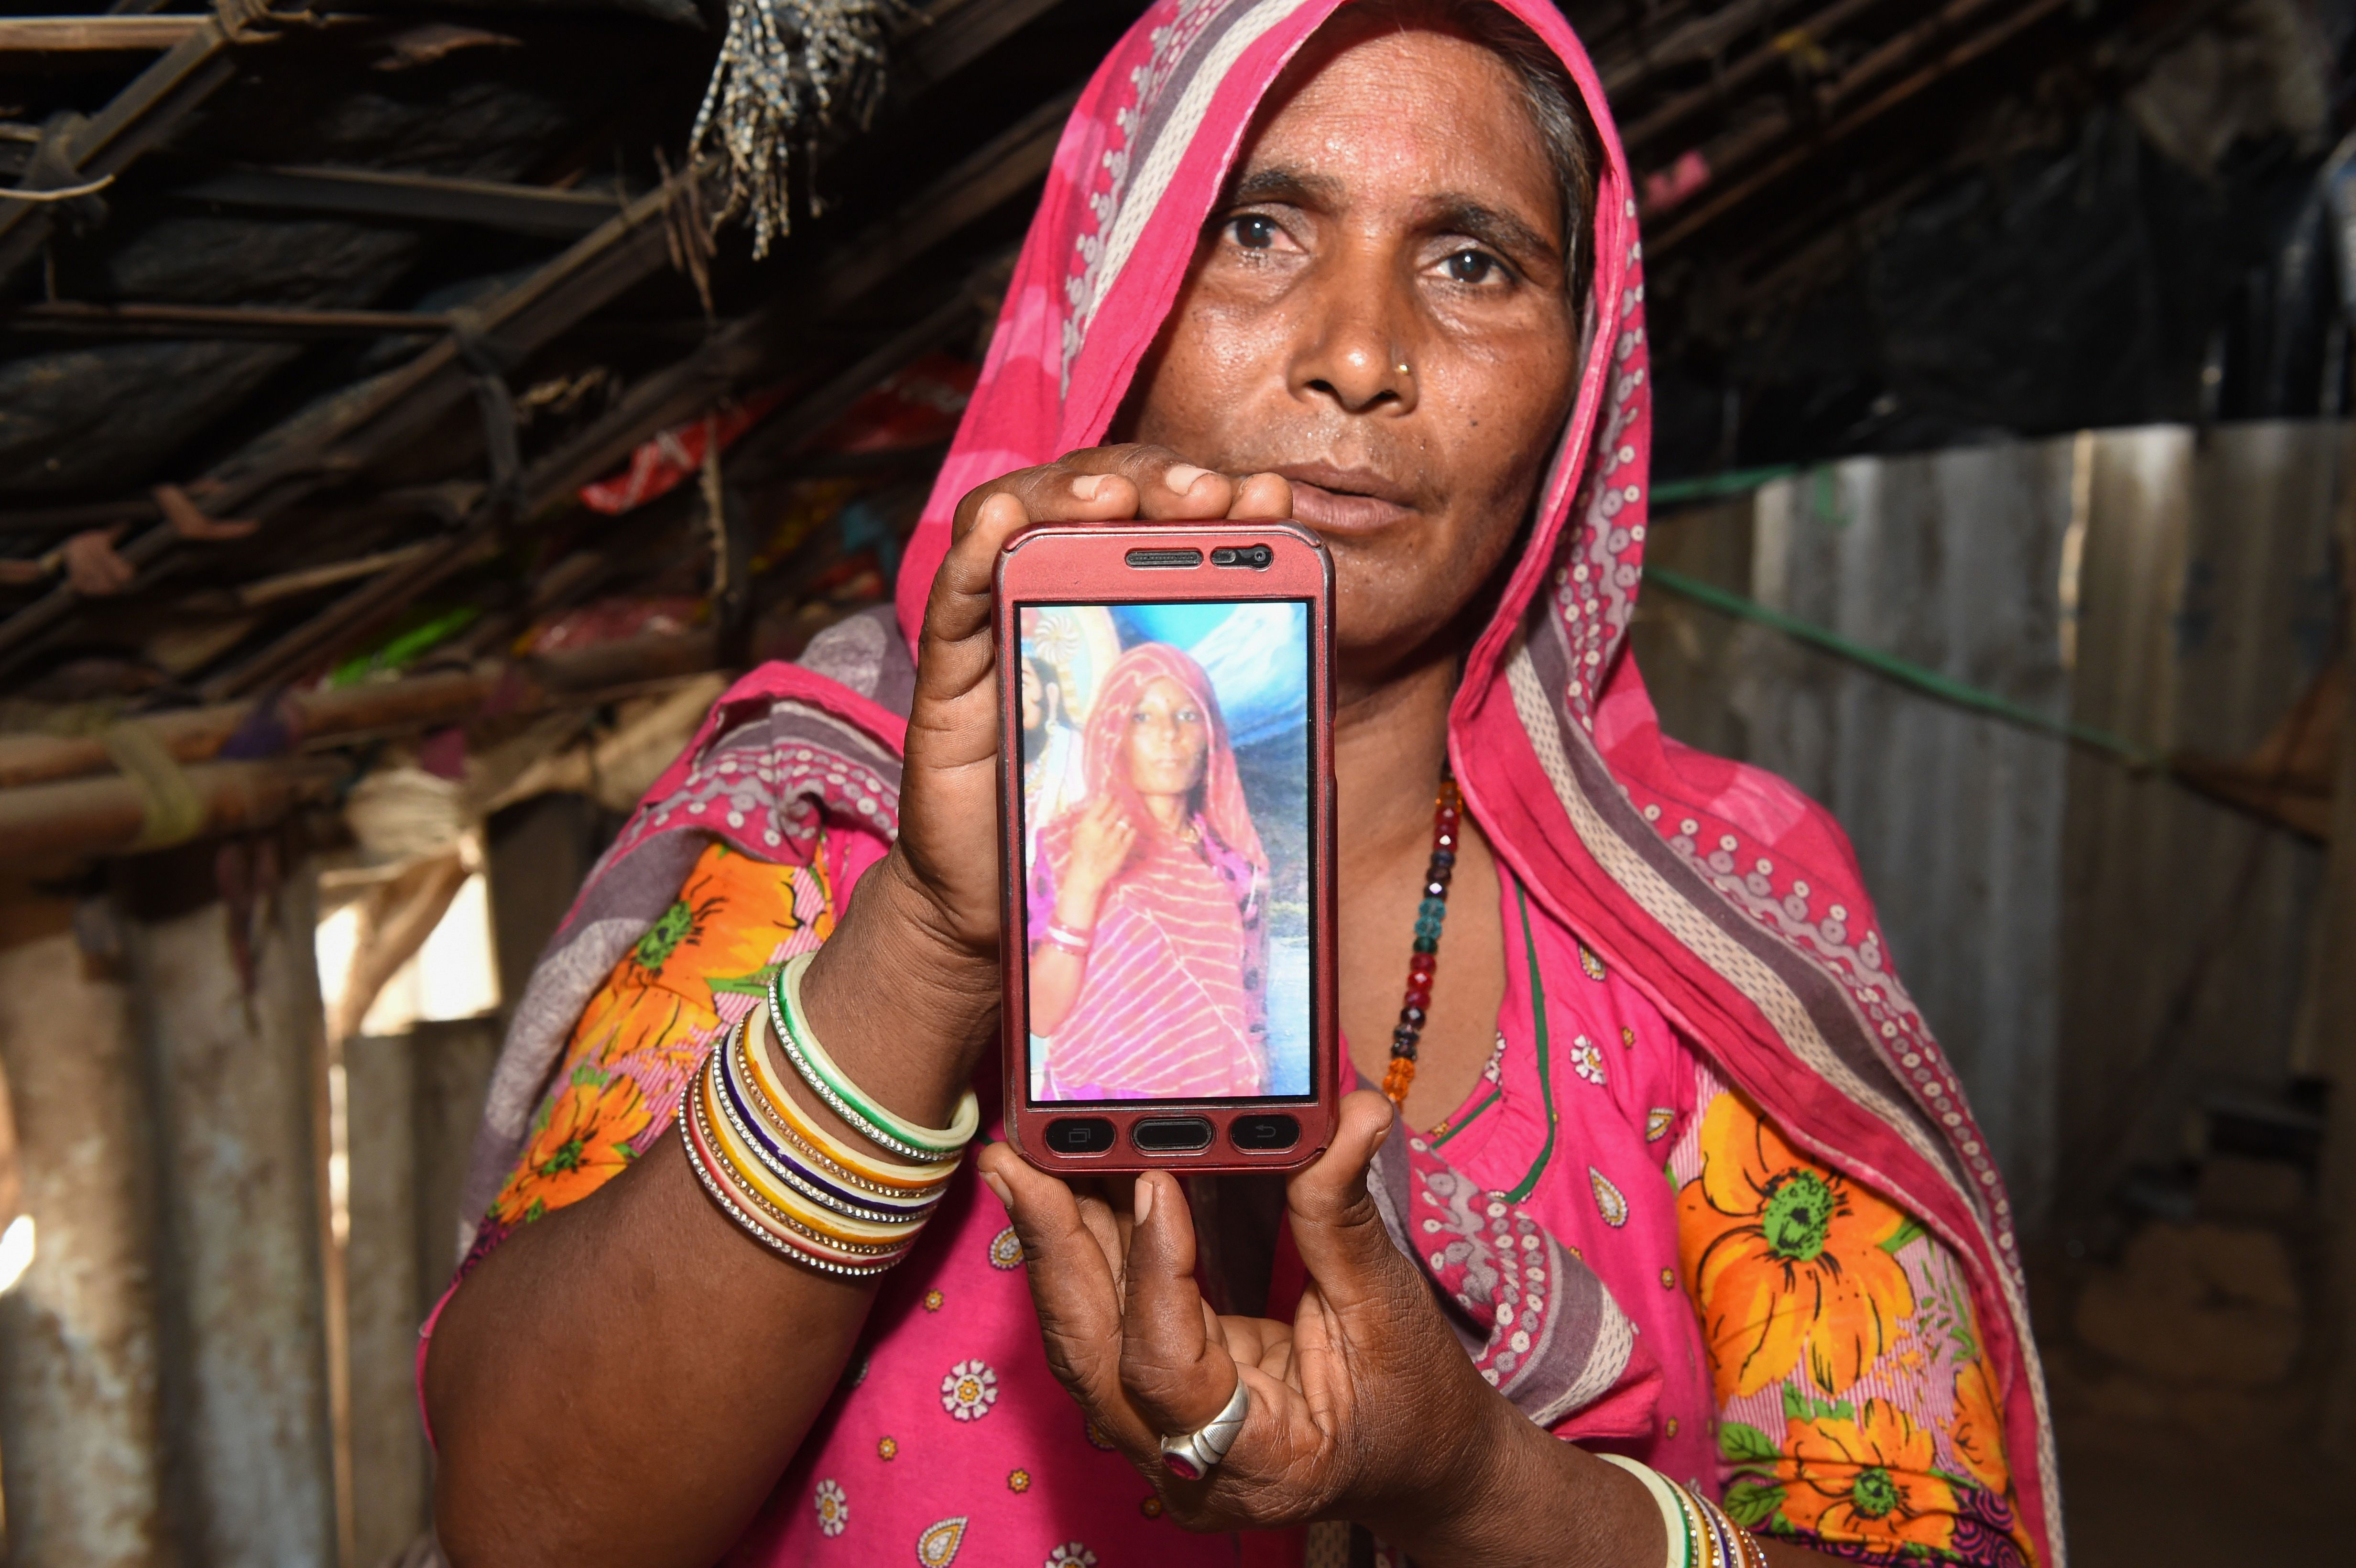 Mohinidevi Nath displays a photo of her cousin Shantadevi Nath, who was killed by a mob that falsely believed she was intent on abducting children, on the outskirts of Ahmedabad in India's Gujarat state on June 27, 2018.